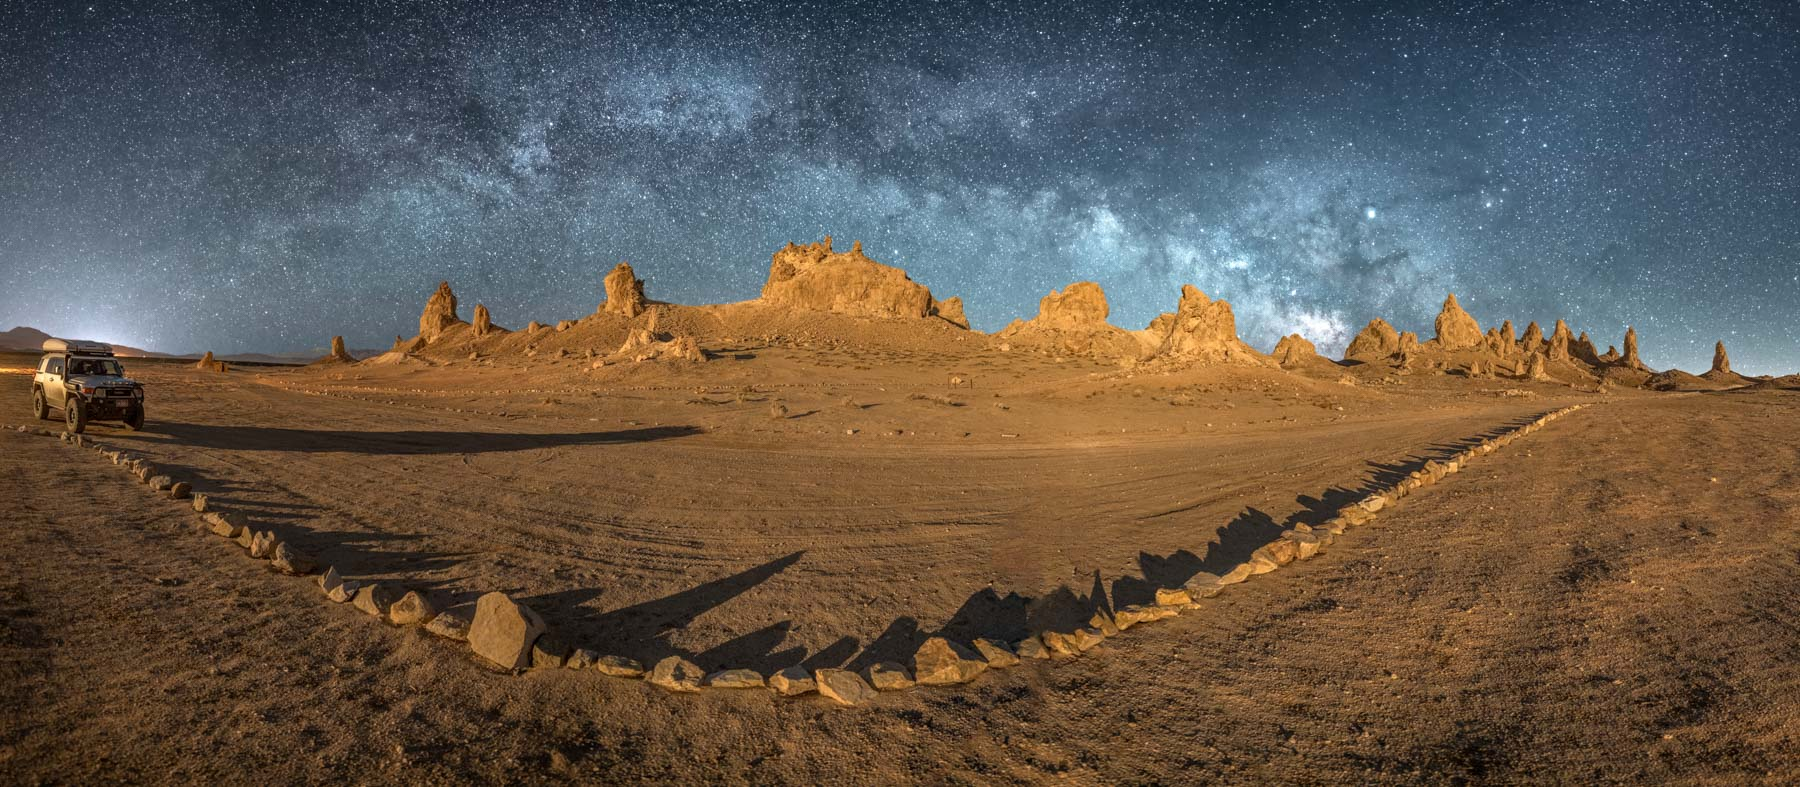 The Milky Way over the Trona Pinnacles